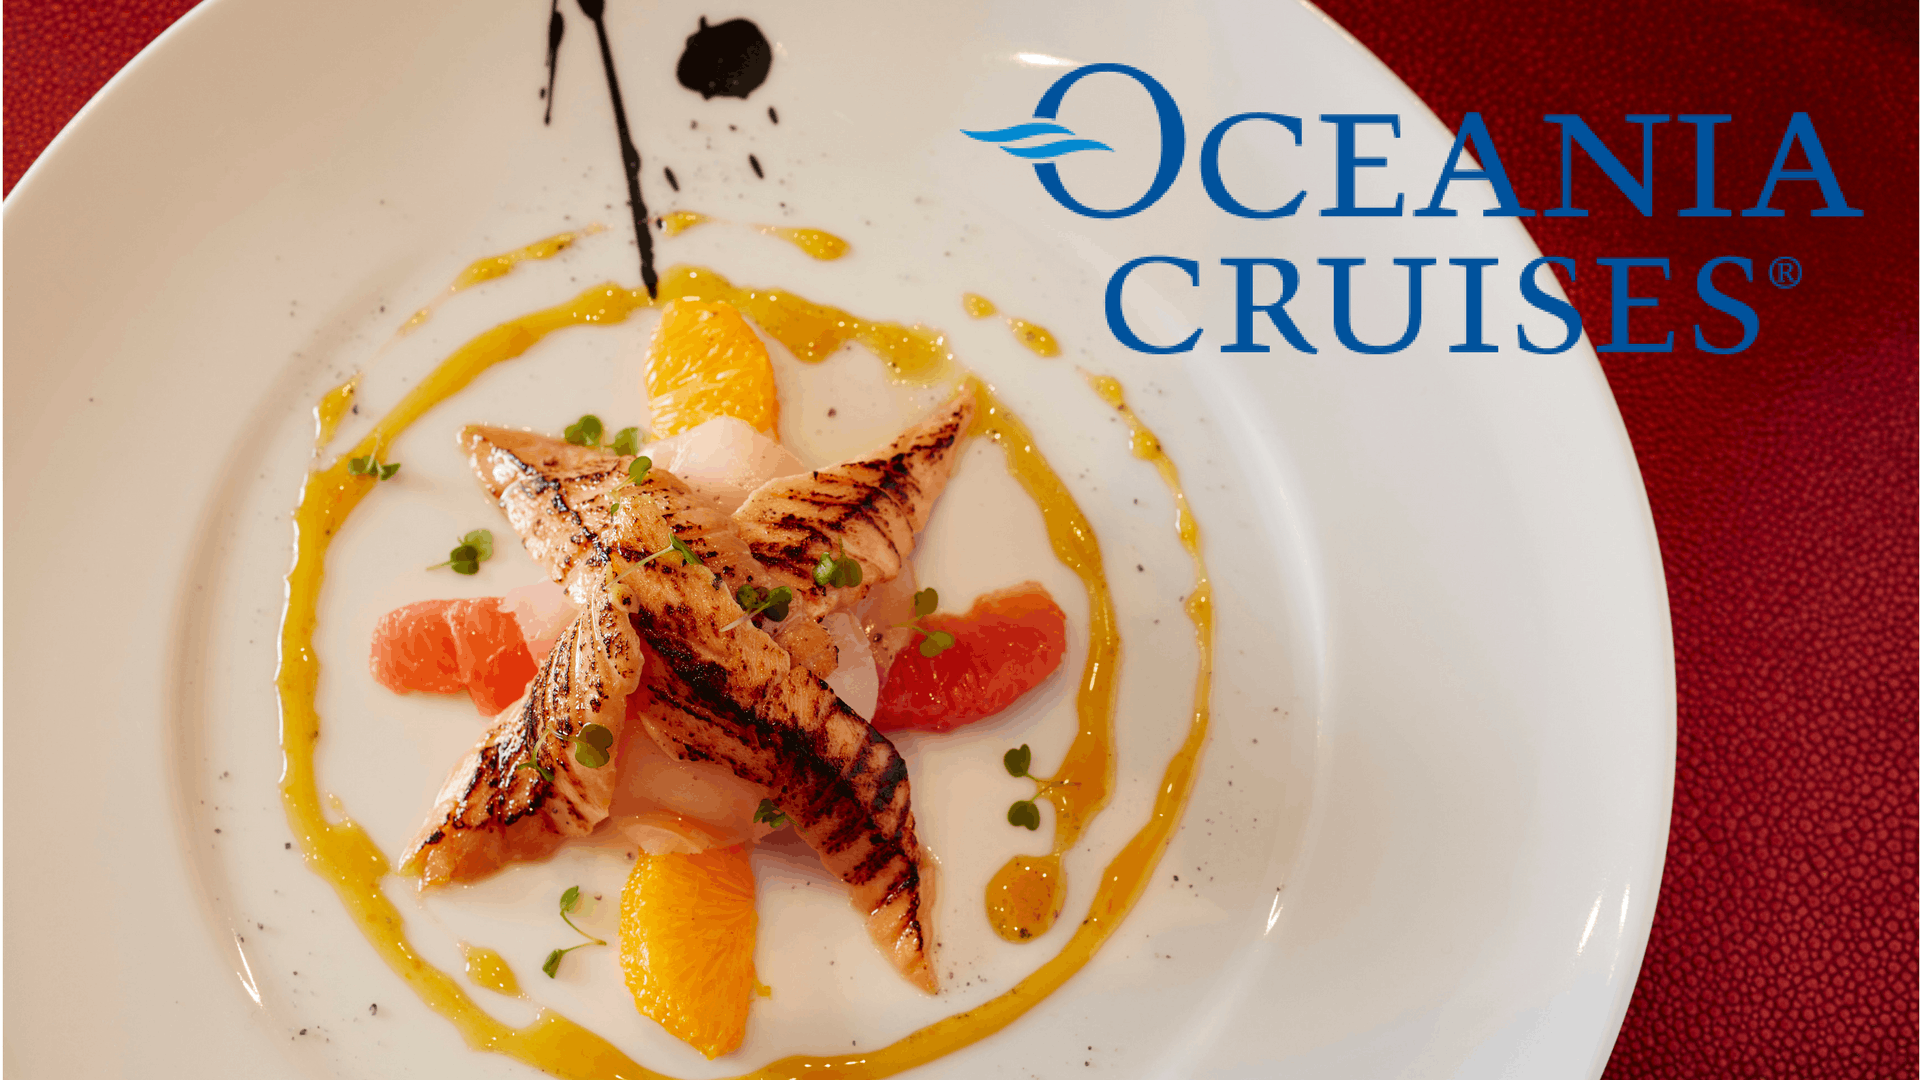 Oceania's Chefs are simply the best at sea, performing feats of gastronomic wizardry nightly.